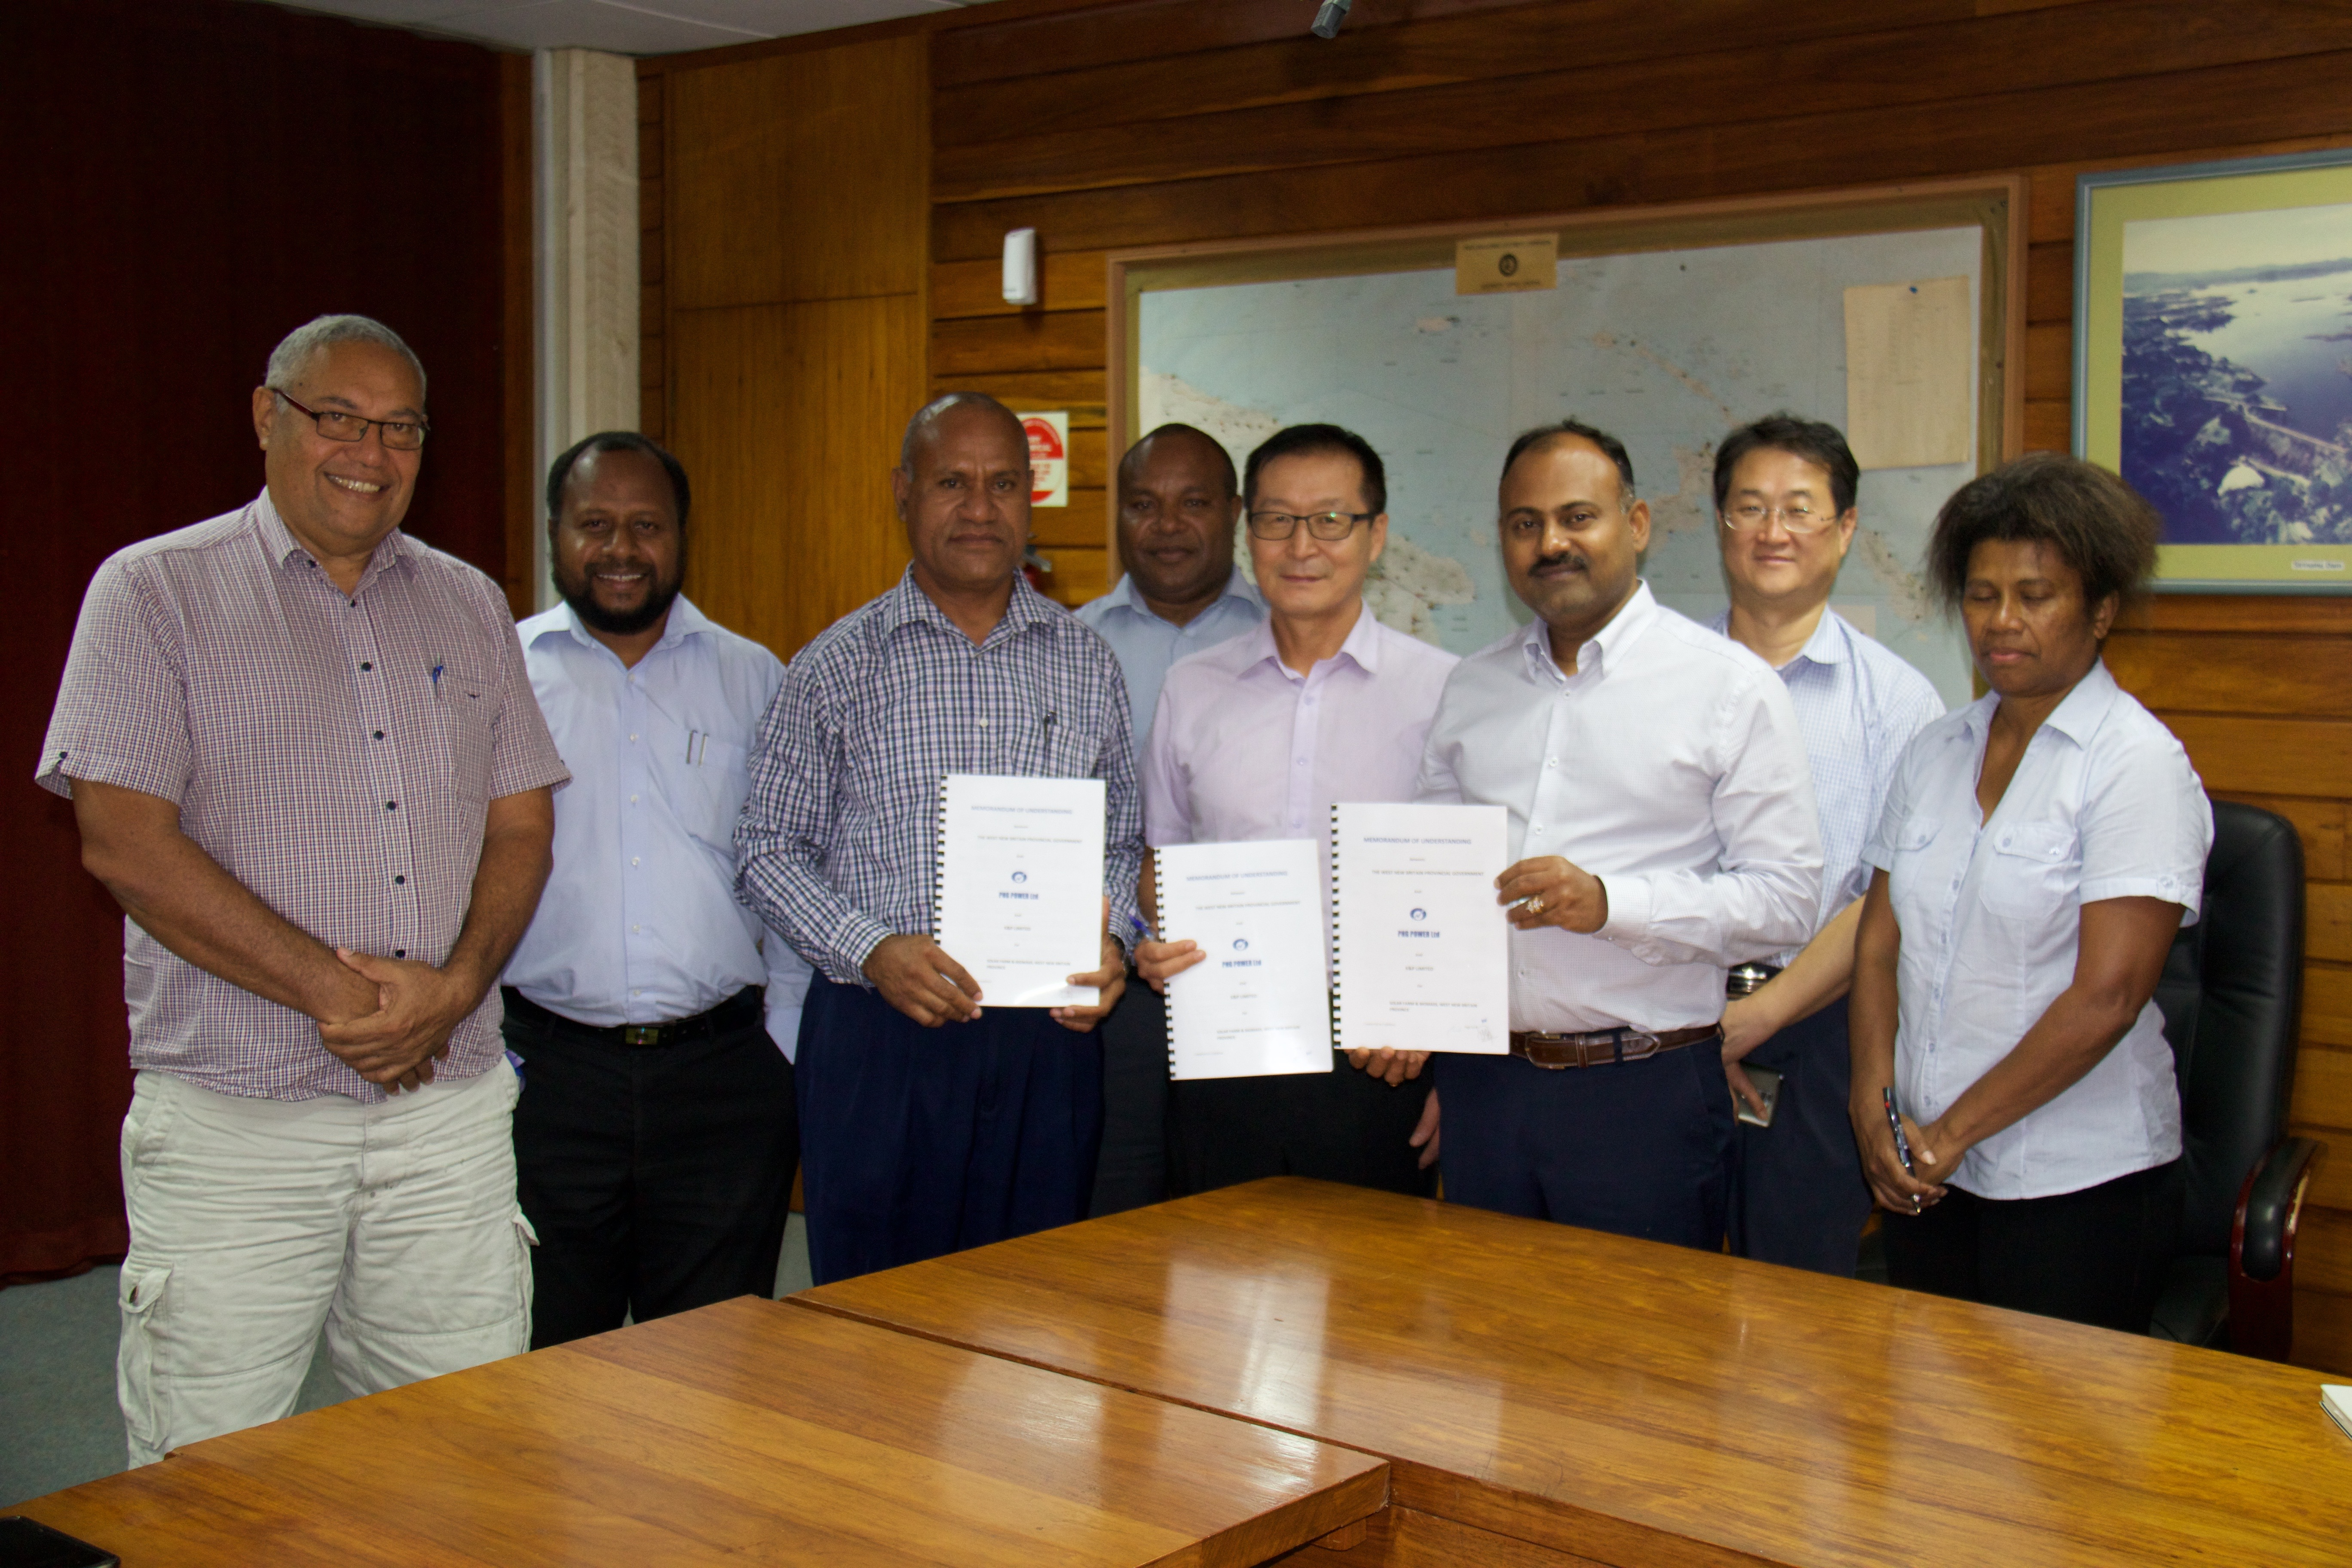 PPL SIGNS MOU FOR SOLAR FARM AND BIOMASS PLANT WITH WNB PROVINCIAL GOVERNMENT AND KOREAN FIRM